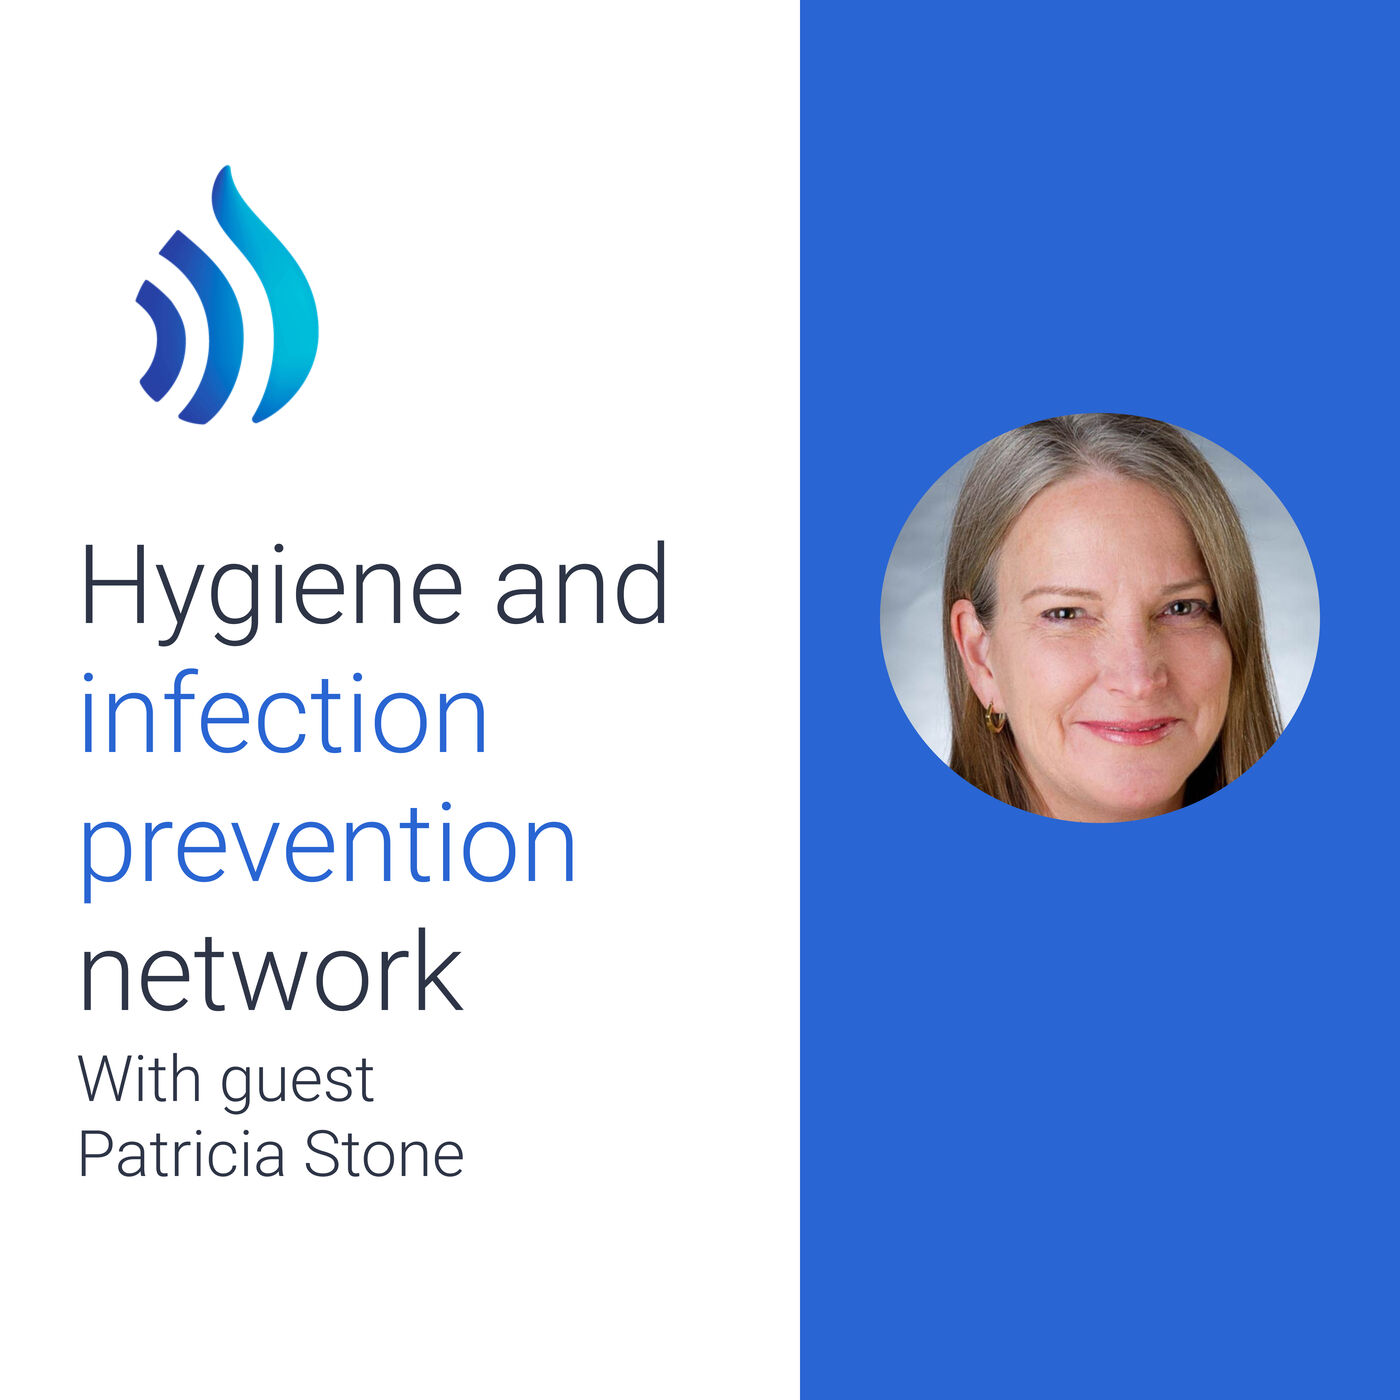 #14 Patricia Stone on being an infection prevention and control pioneer